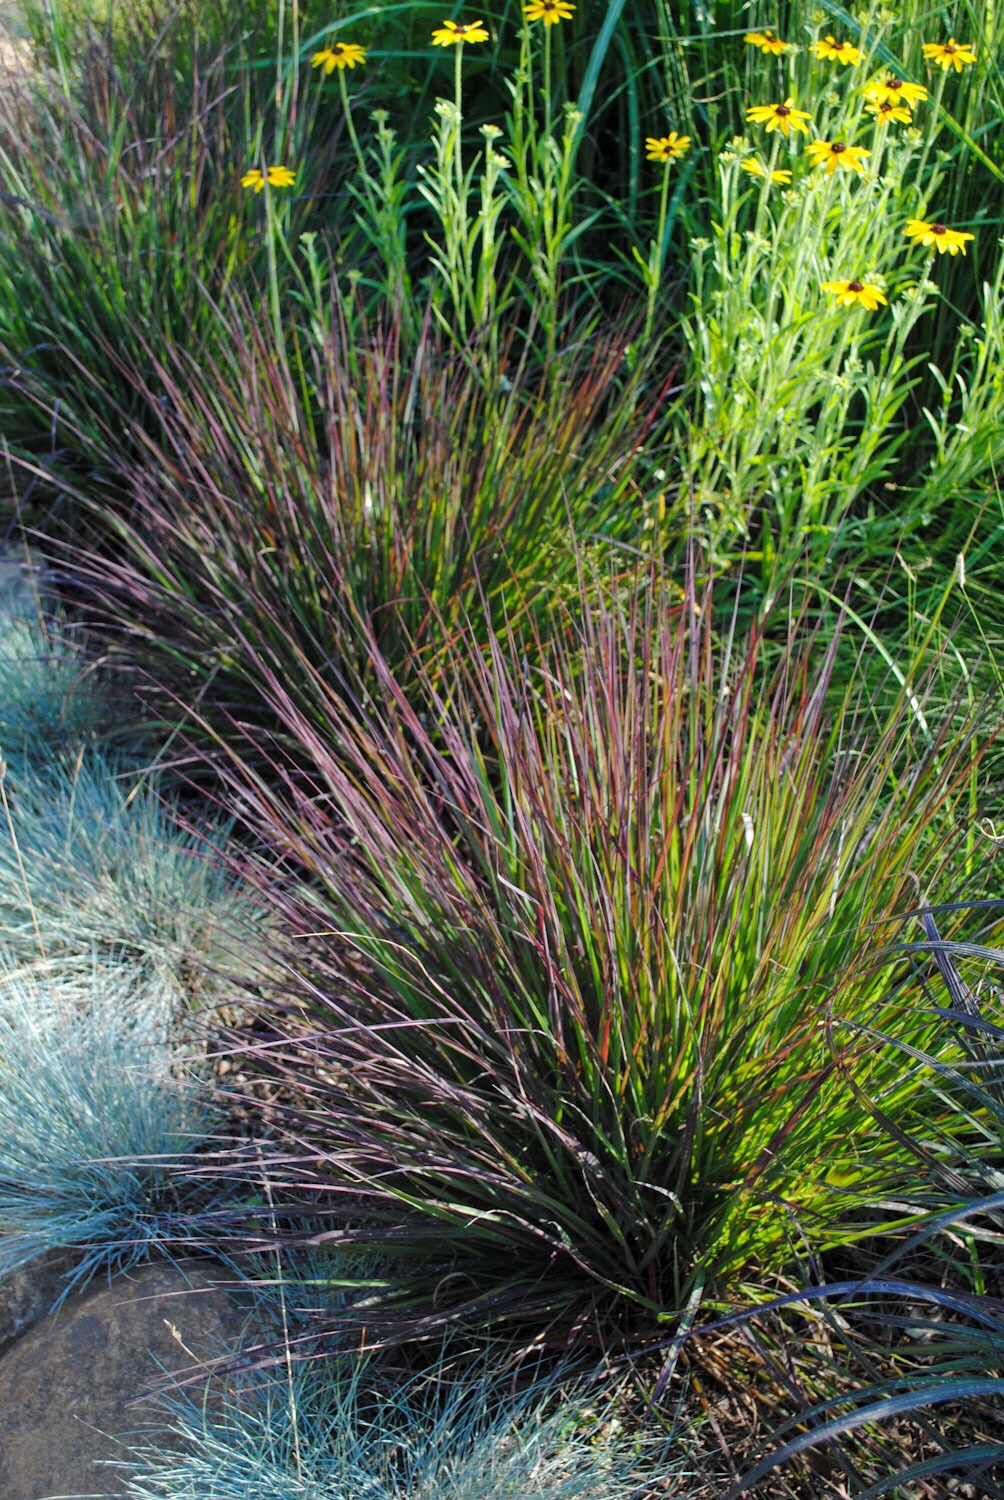 Andropogon 'Red October' tends to elongate a bit later than 'Blackhawks'.